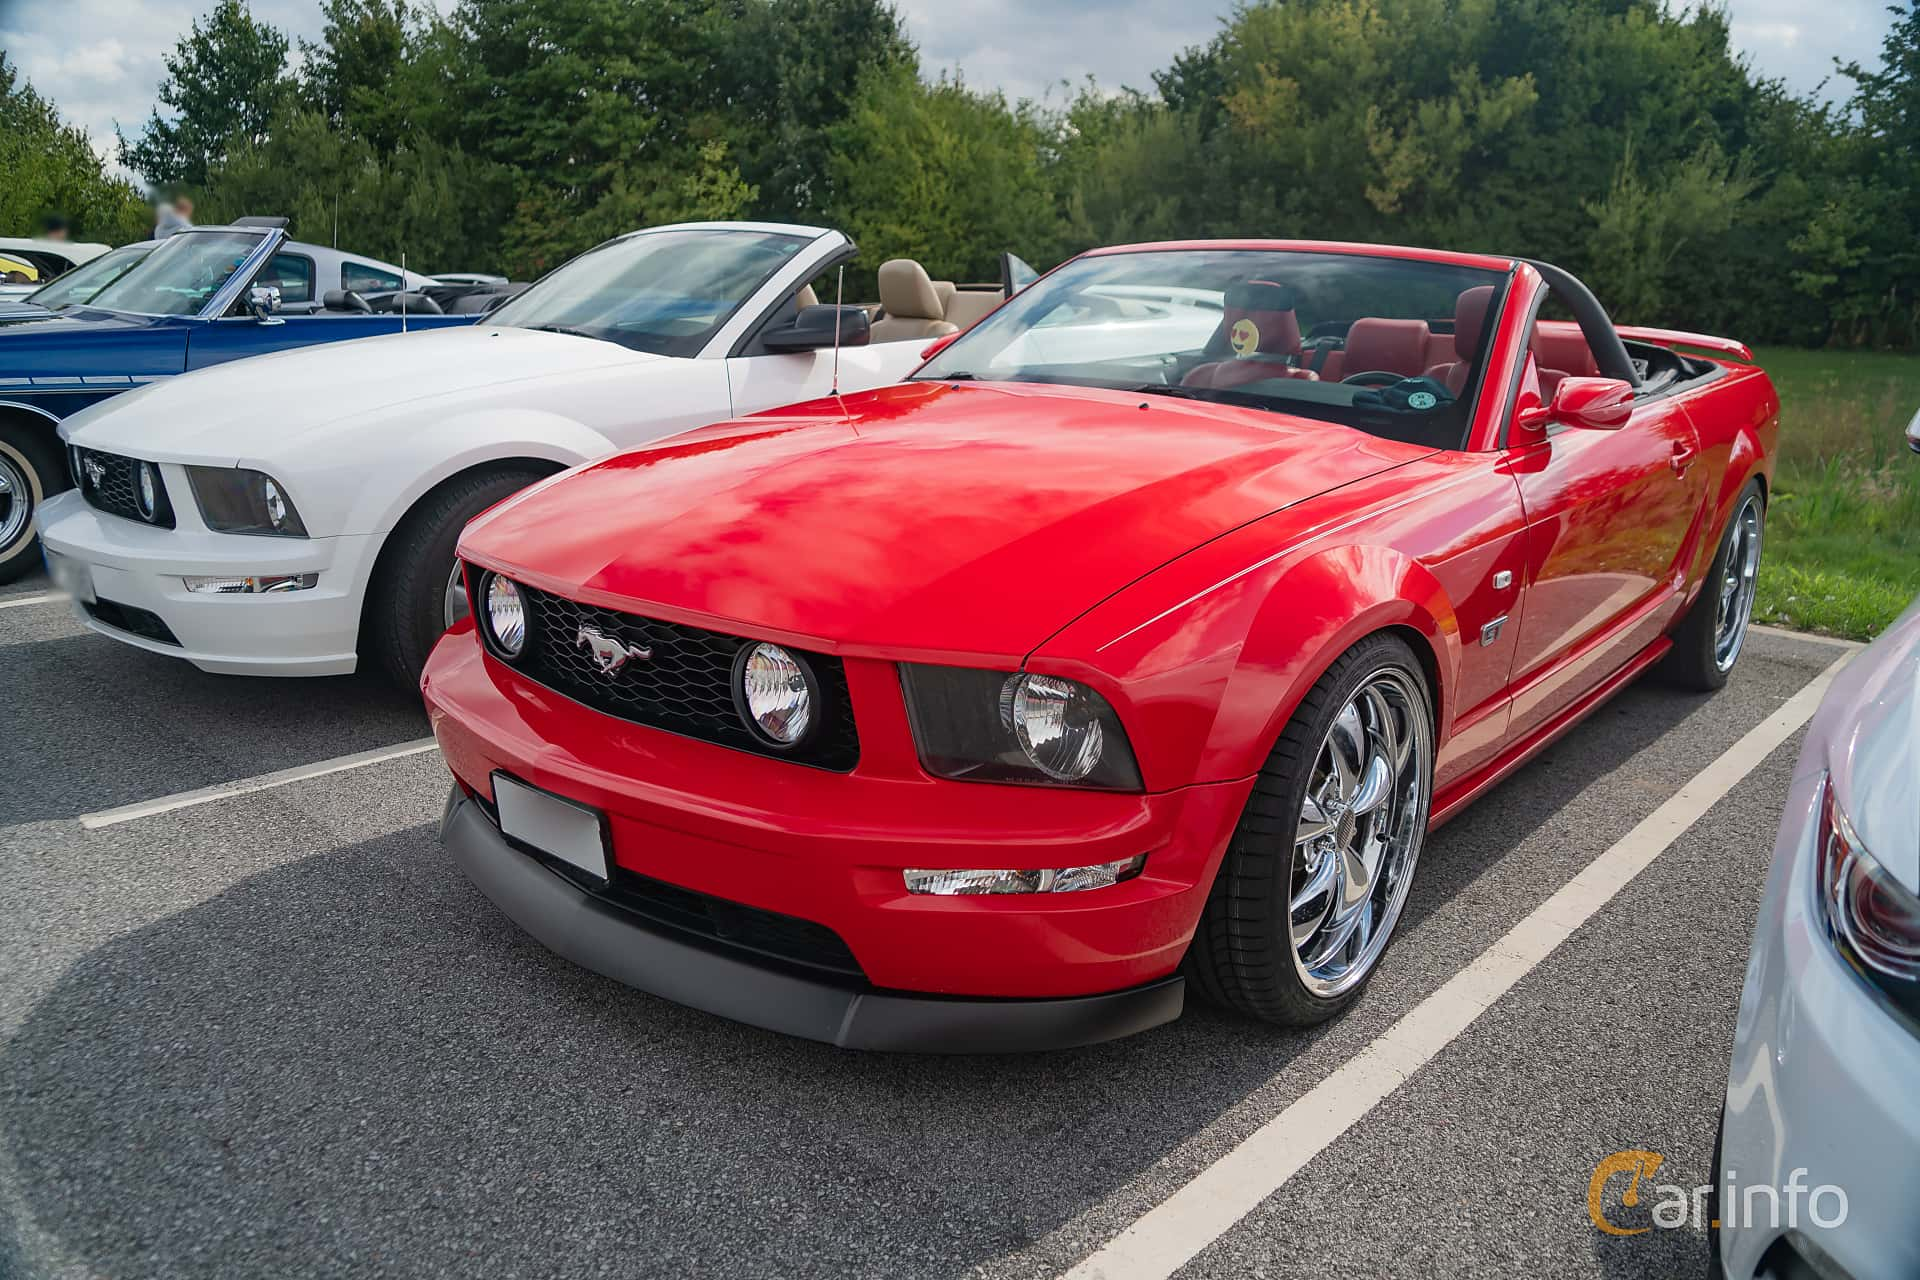 2 Images Of Ford Mustang Gt Convertible 4 6 V8 Automatic 304hp 2005 By Marcusliedholm